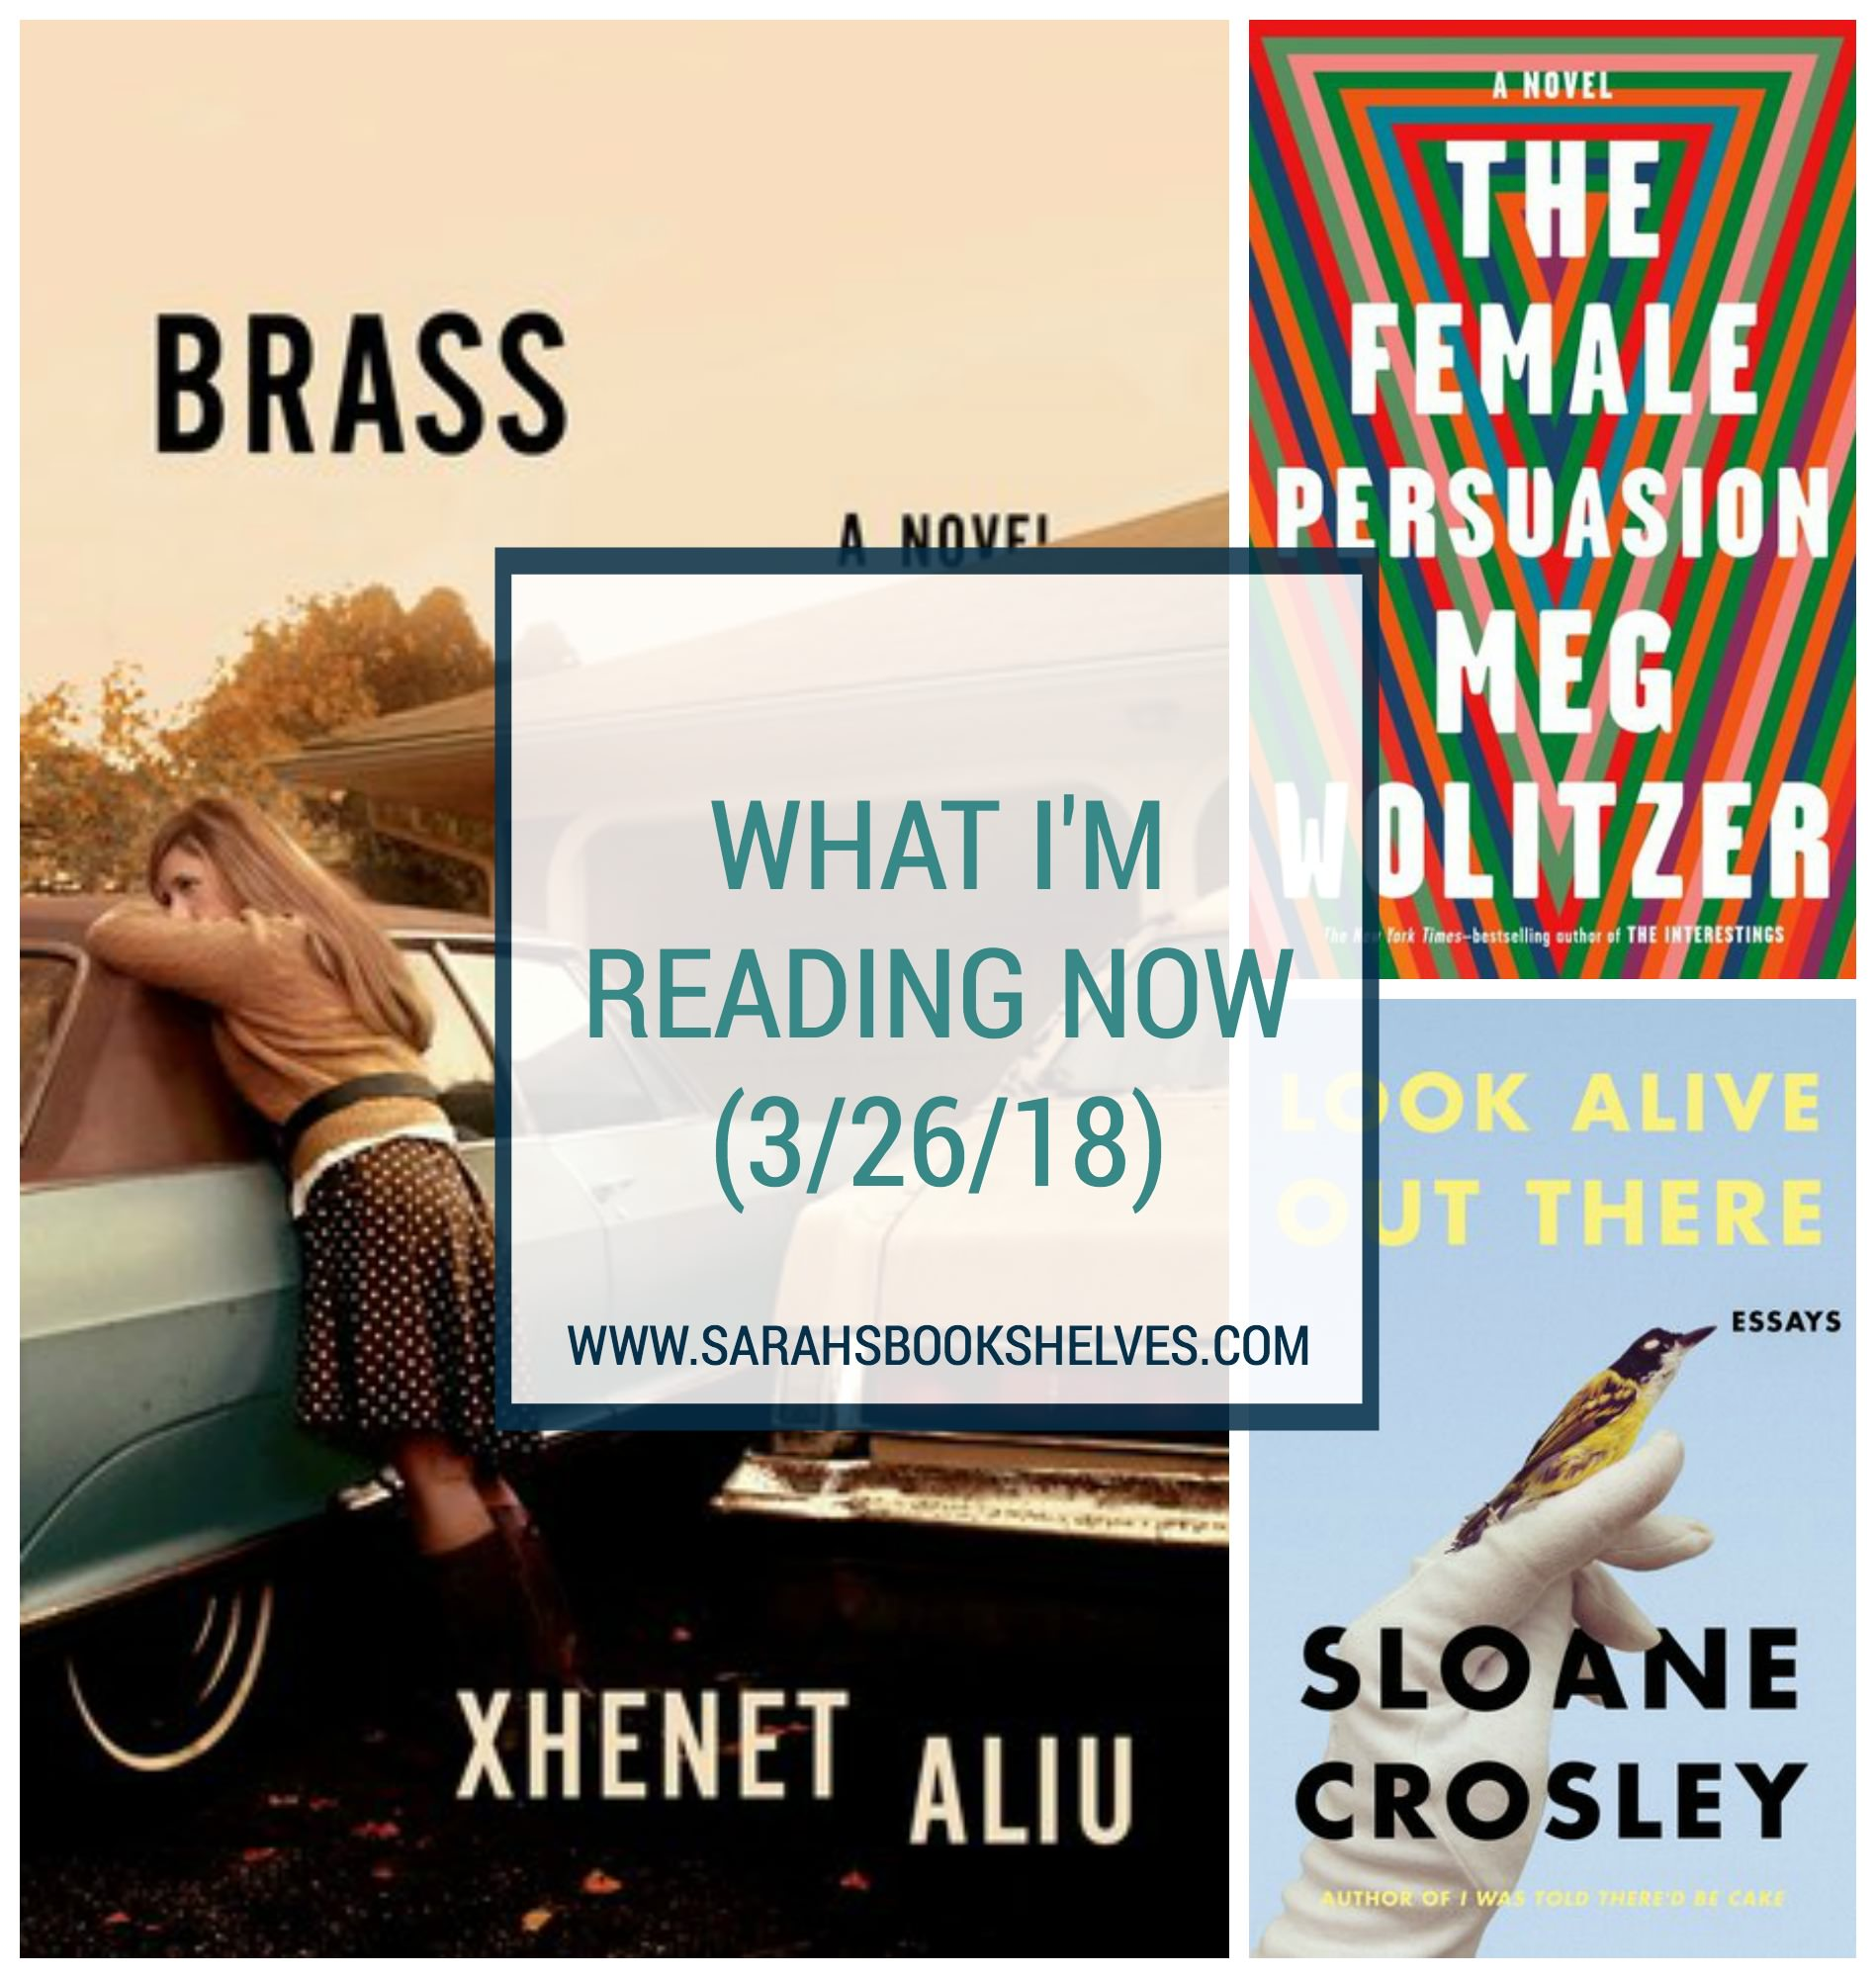 What I'm Reading Now (3/26/18): Just finished The Female Persuasion by Meg Wolitzer and Look Alive Out There by Sloane Crosley. Now reading Brass by Xhenet Aliu. #reading #book #bookish #bookworms #booklovers